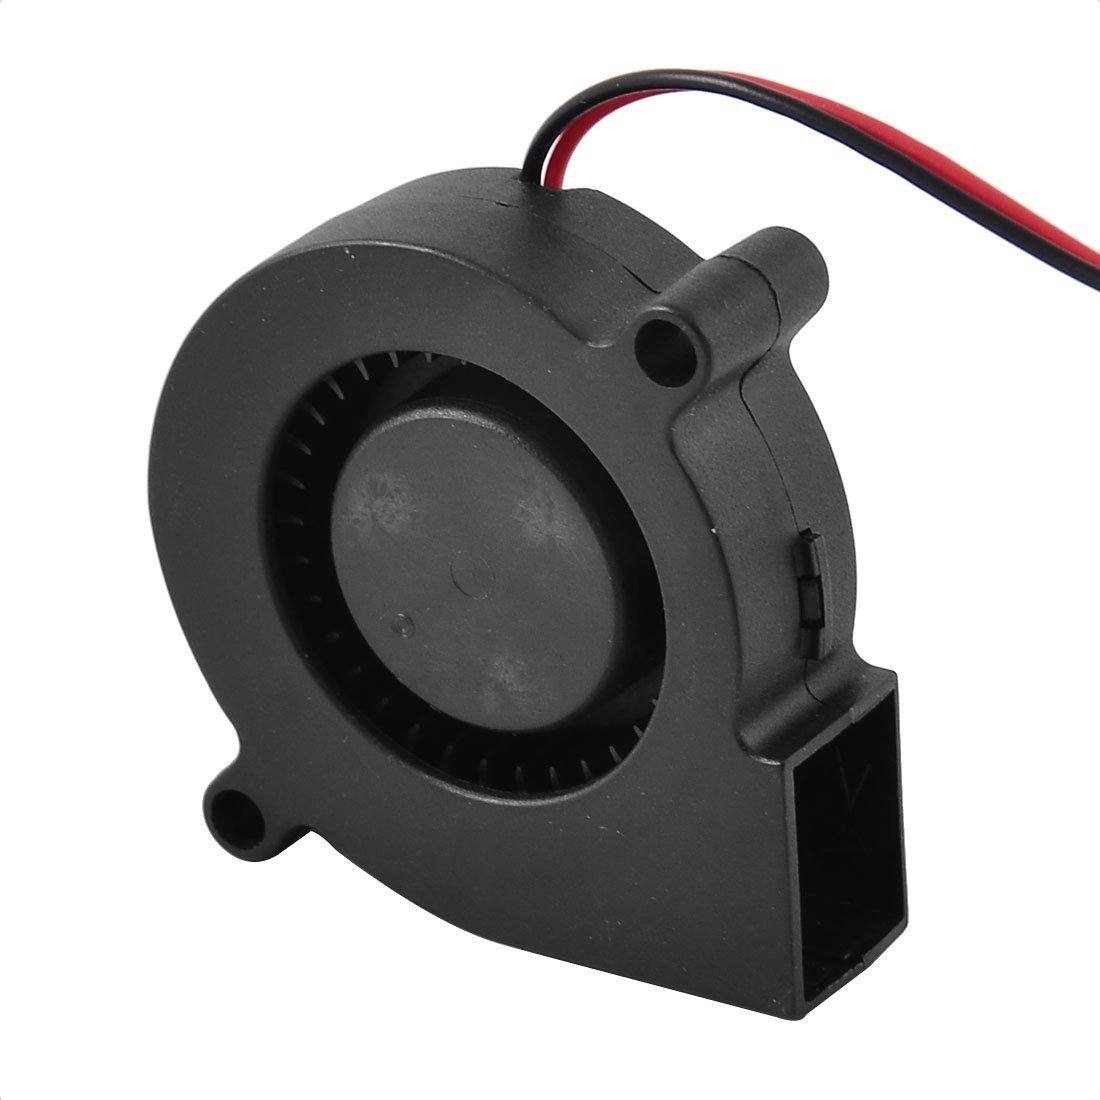 Amazon.com: Copapa 2 Pin Connector Cooling Blower Fan 50mmx15mm for ...